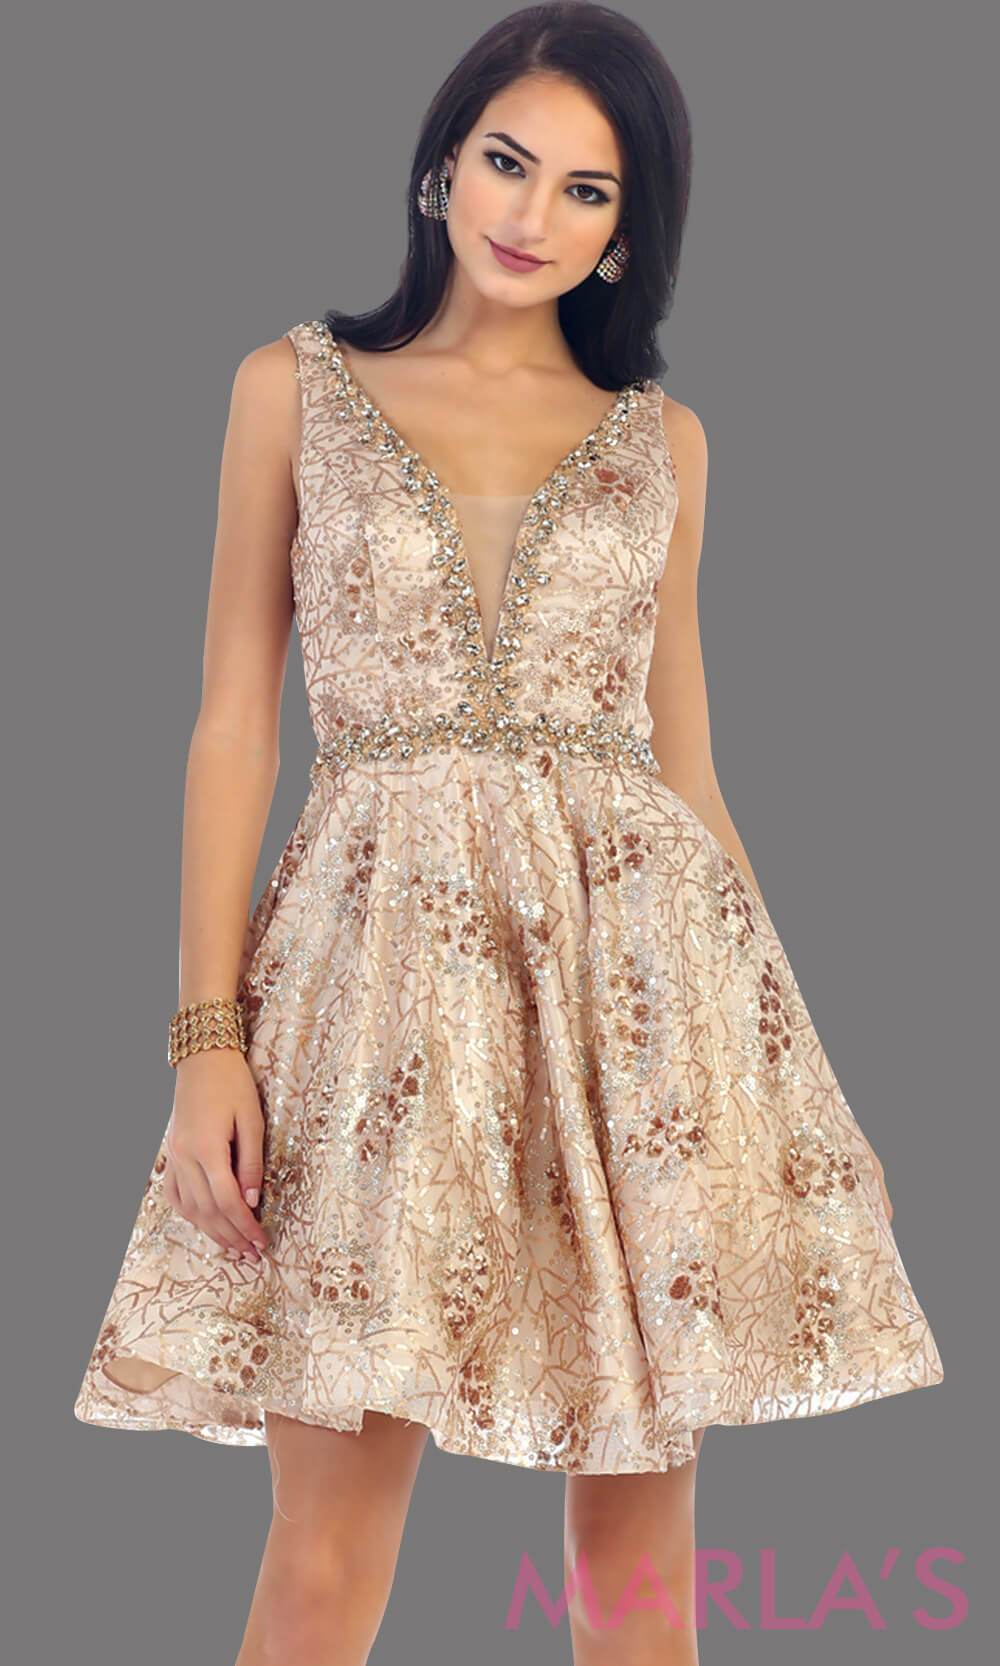 7438-Short champagne dress with deep V neck and back. This is a perfect grade 8 grad dress, graduation dress, taupe wedding guest dress, short prom dress or even damas dress. Available in plus sizes